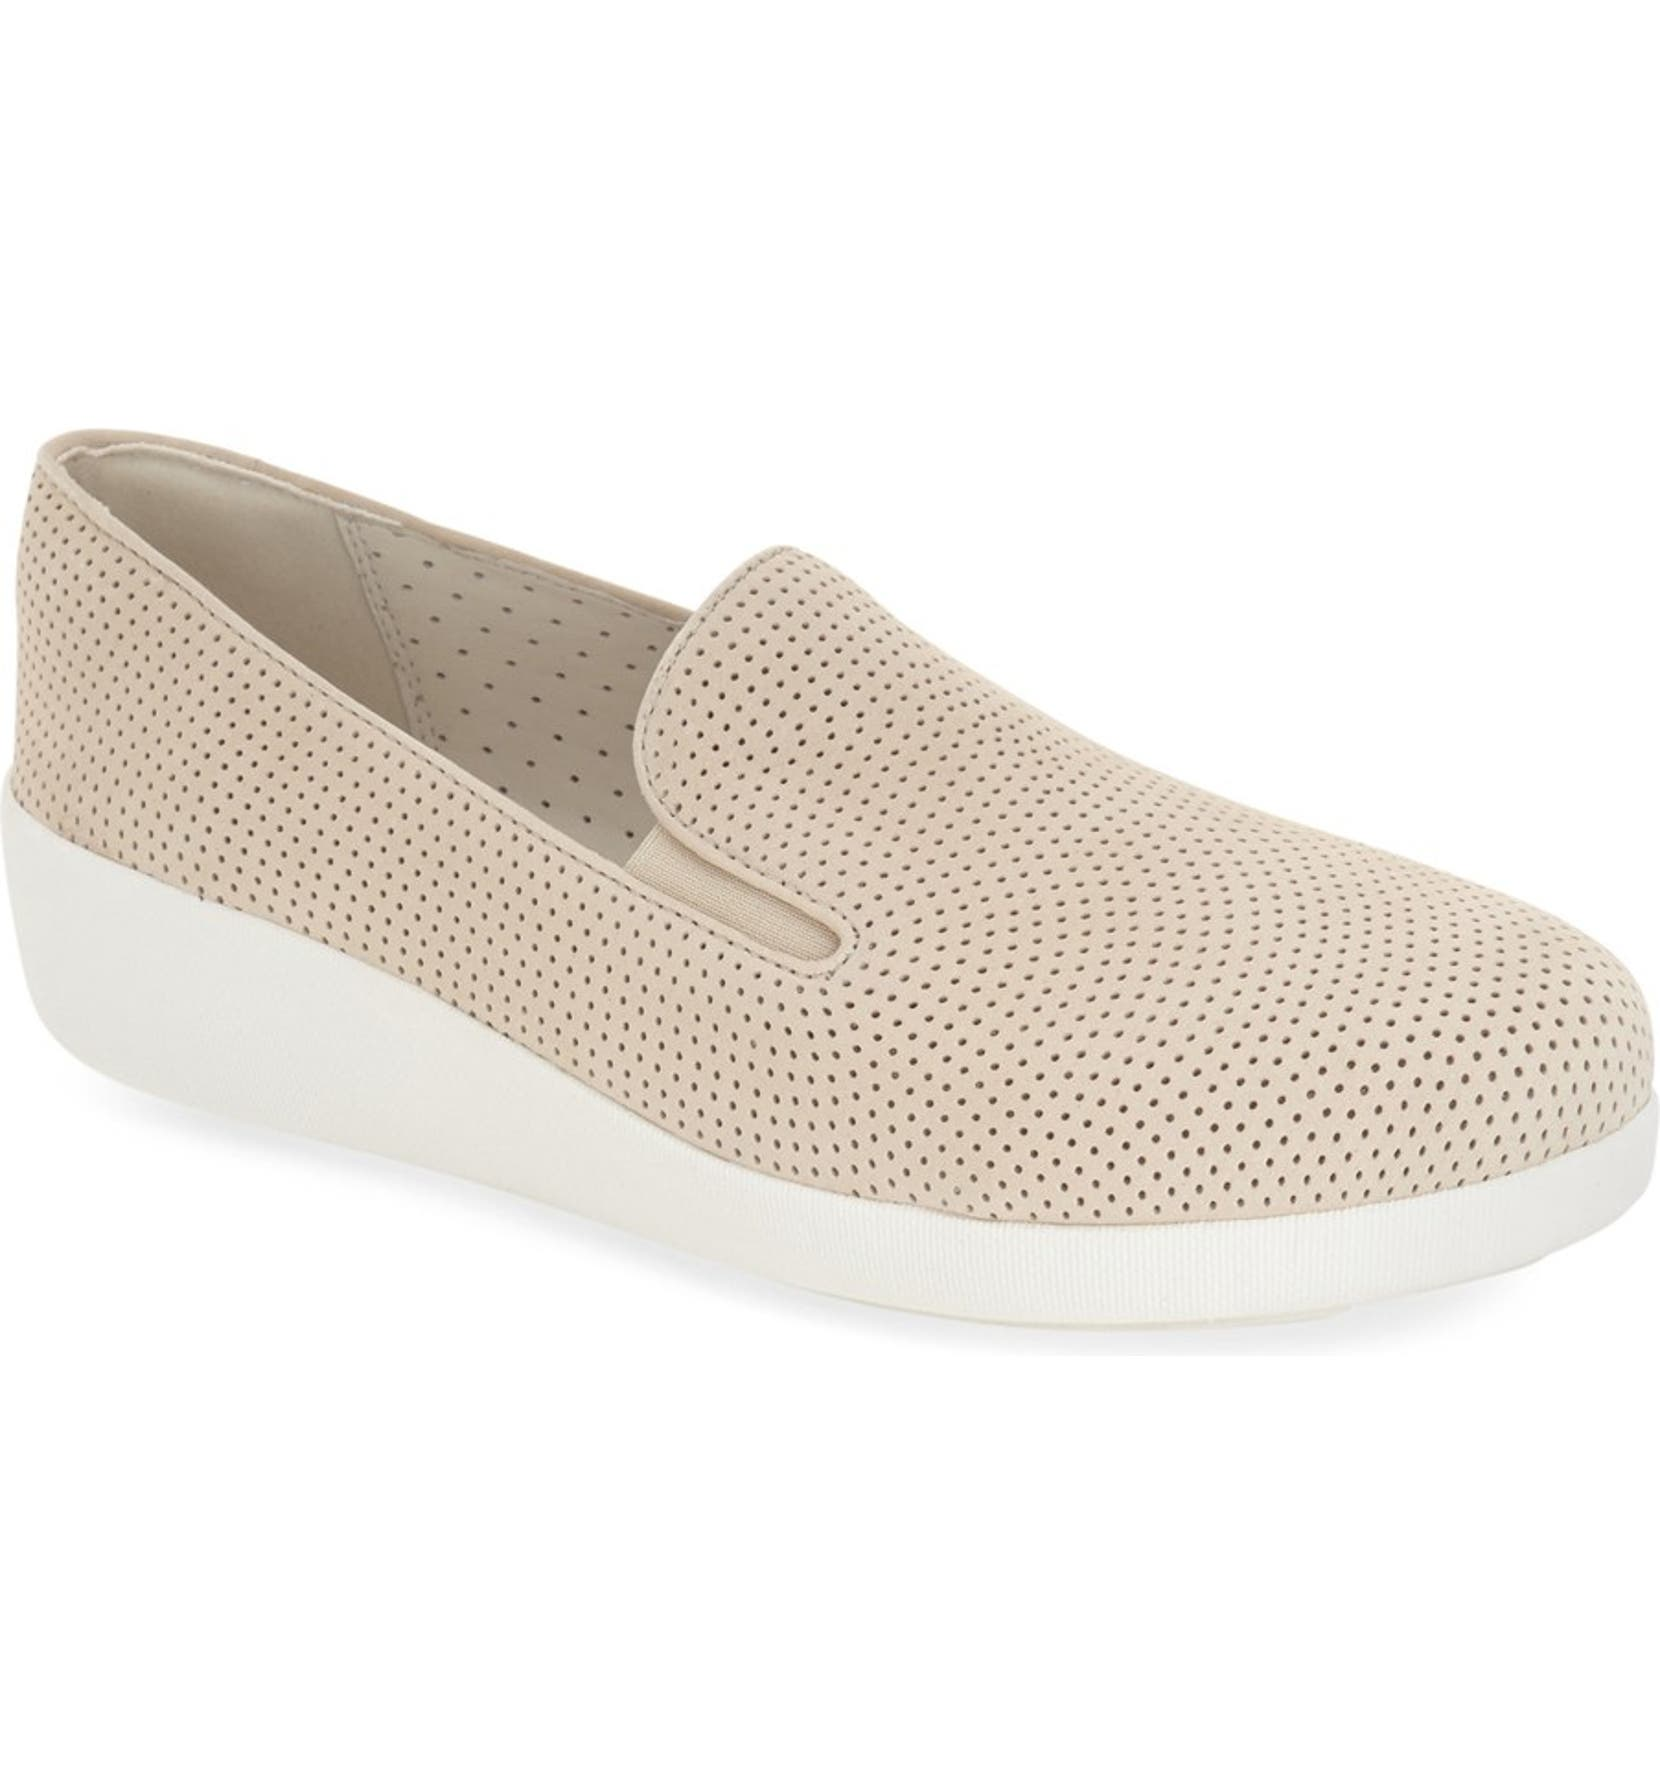 0d73025a0ac FitFlop™  F-Pop Skate  Perforated Wedge Sneaker (Women)